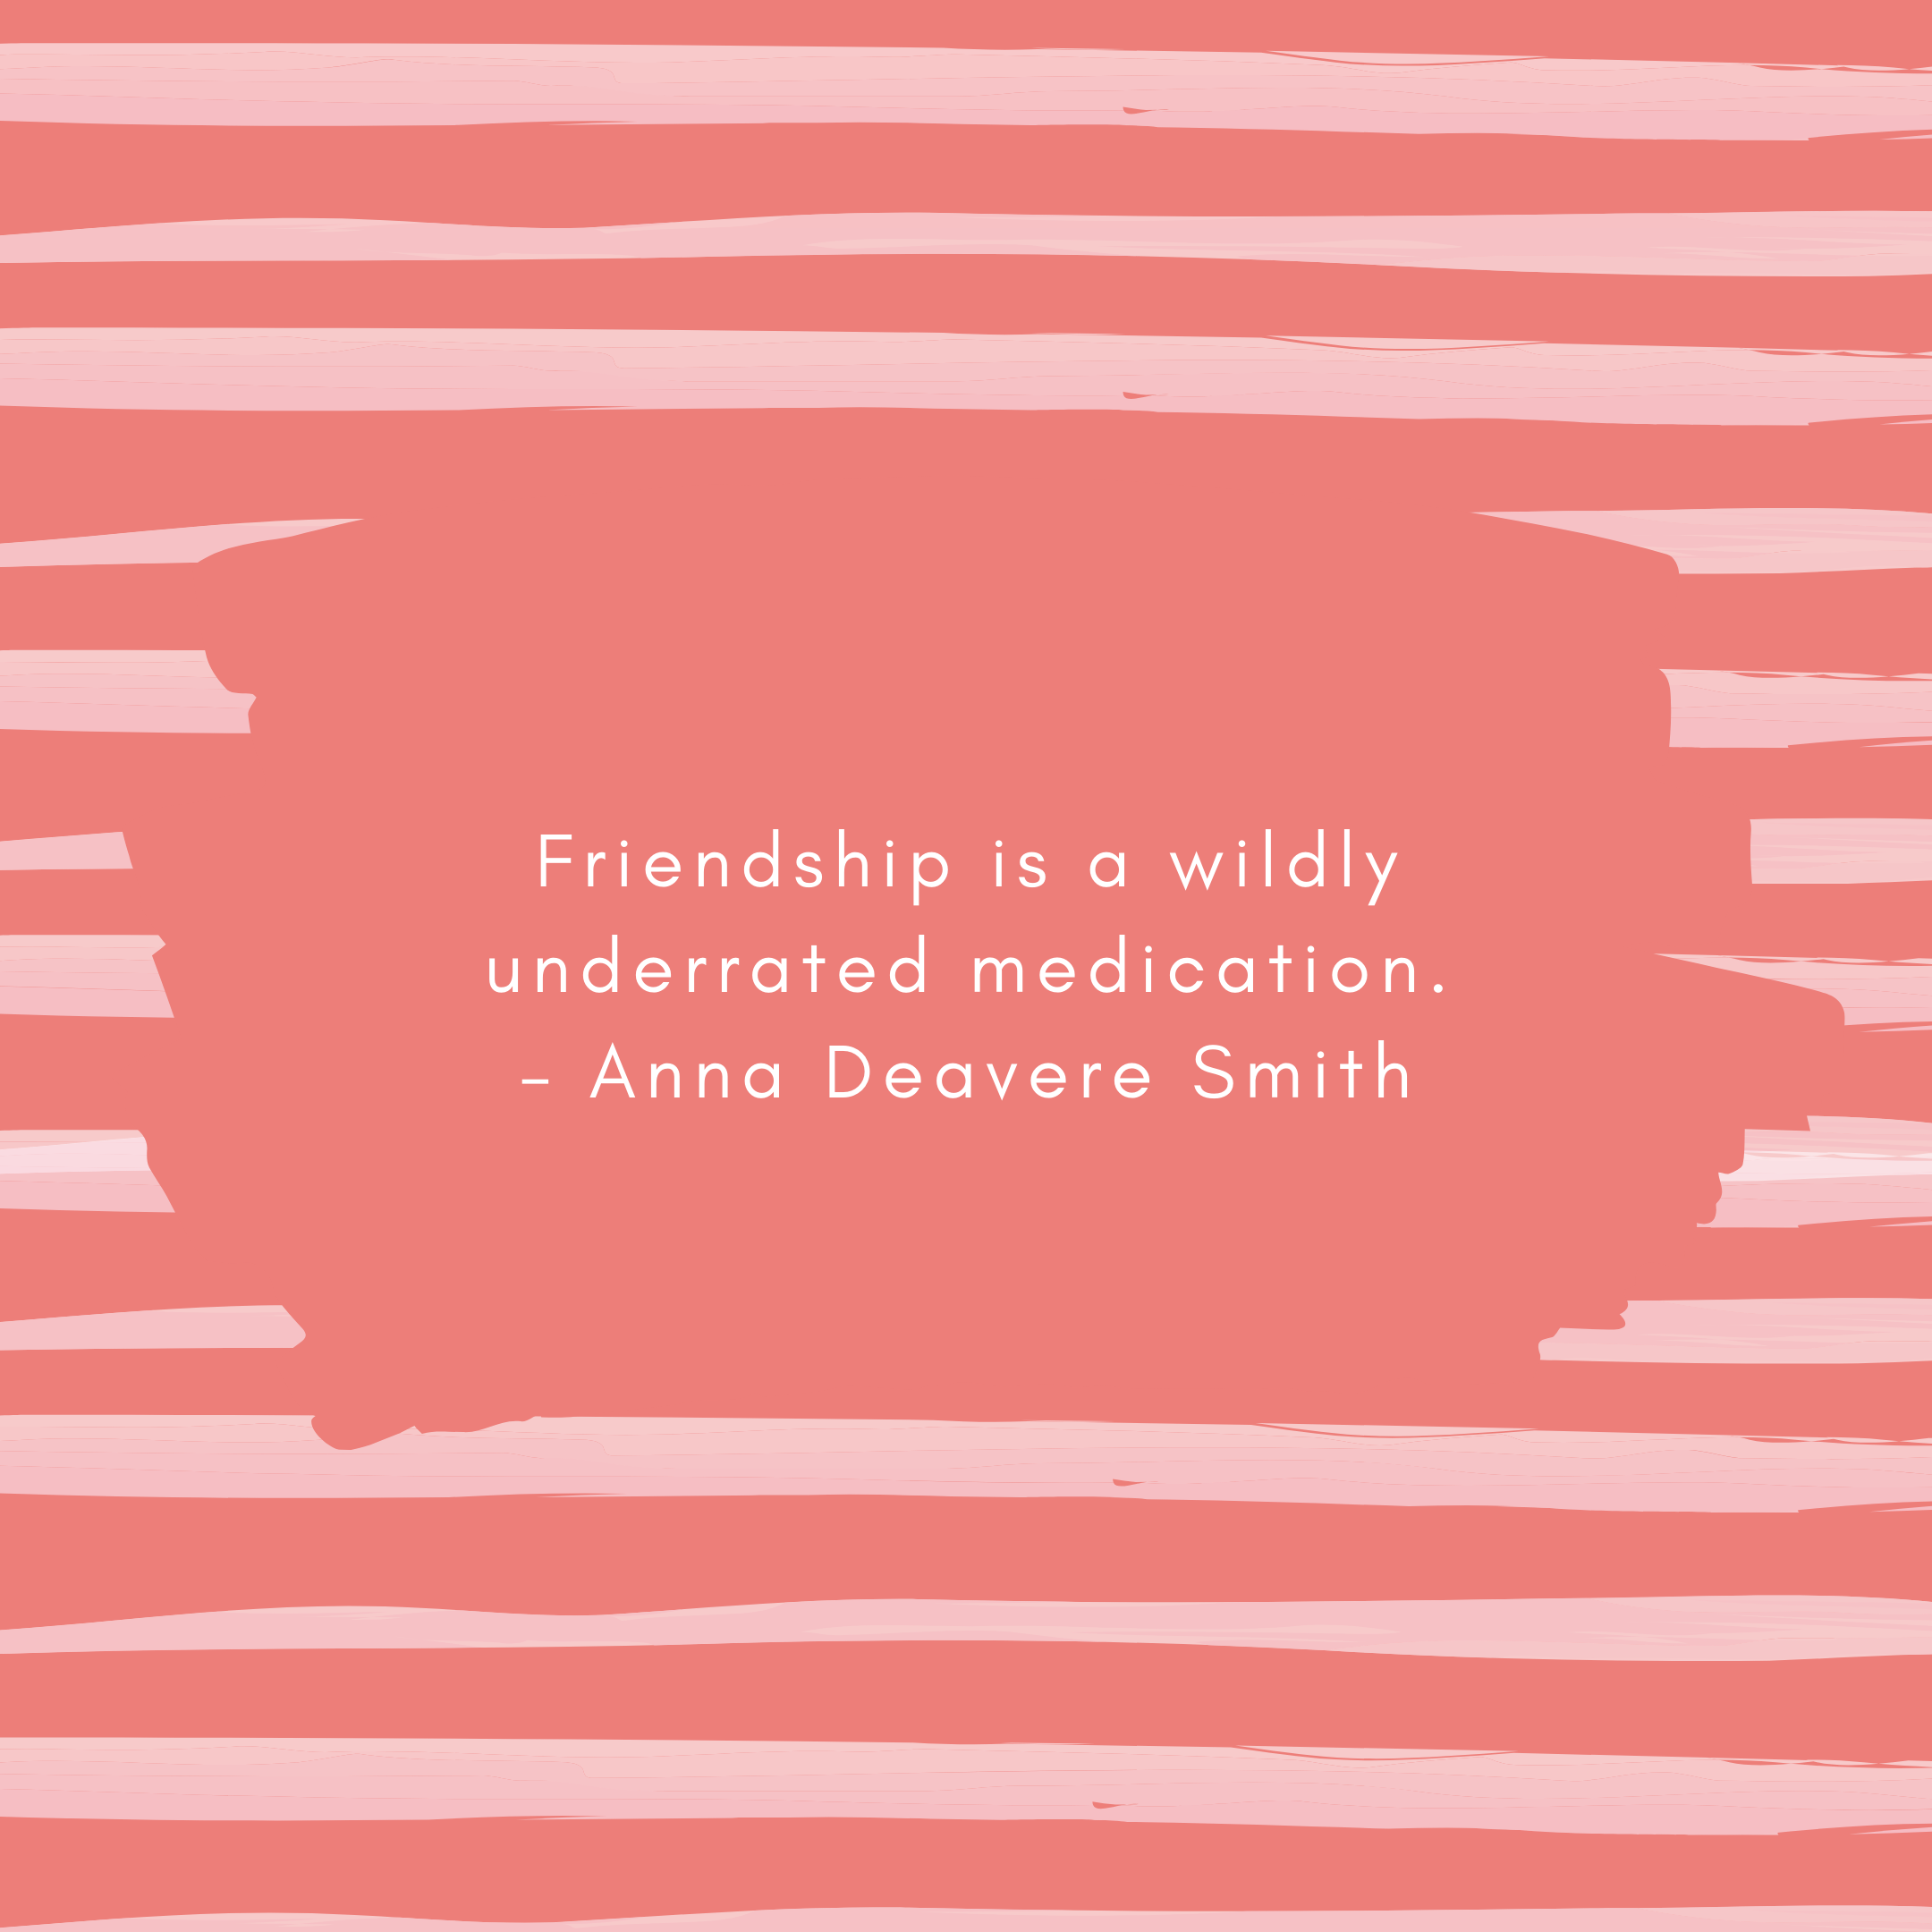 Friendship is a wildly underrated medication. – Anna Deavere Smith